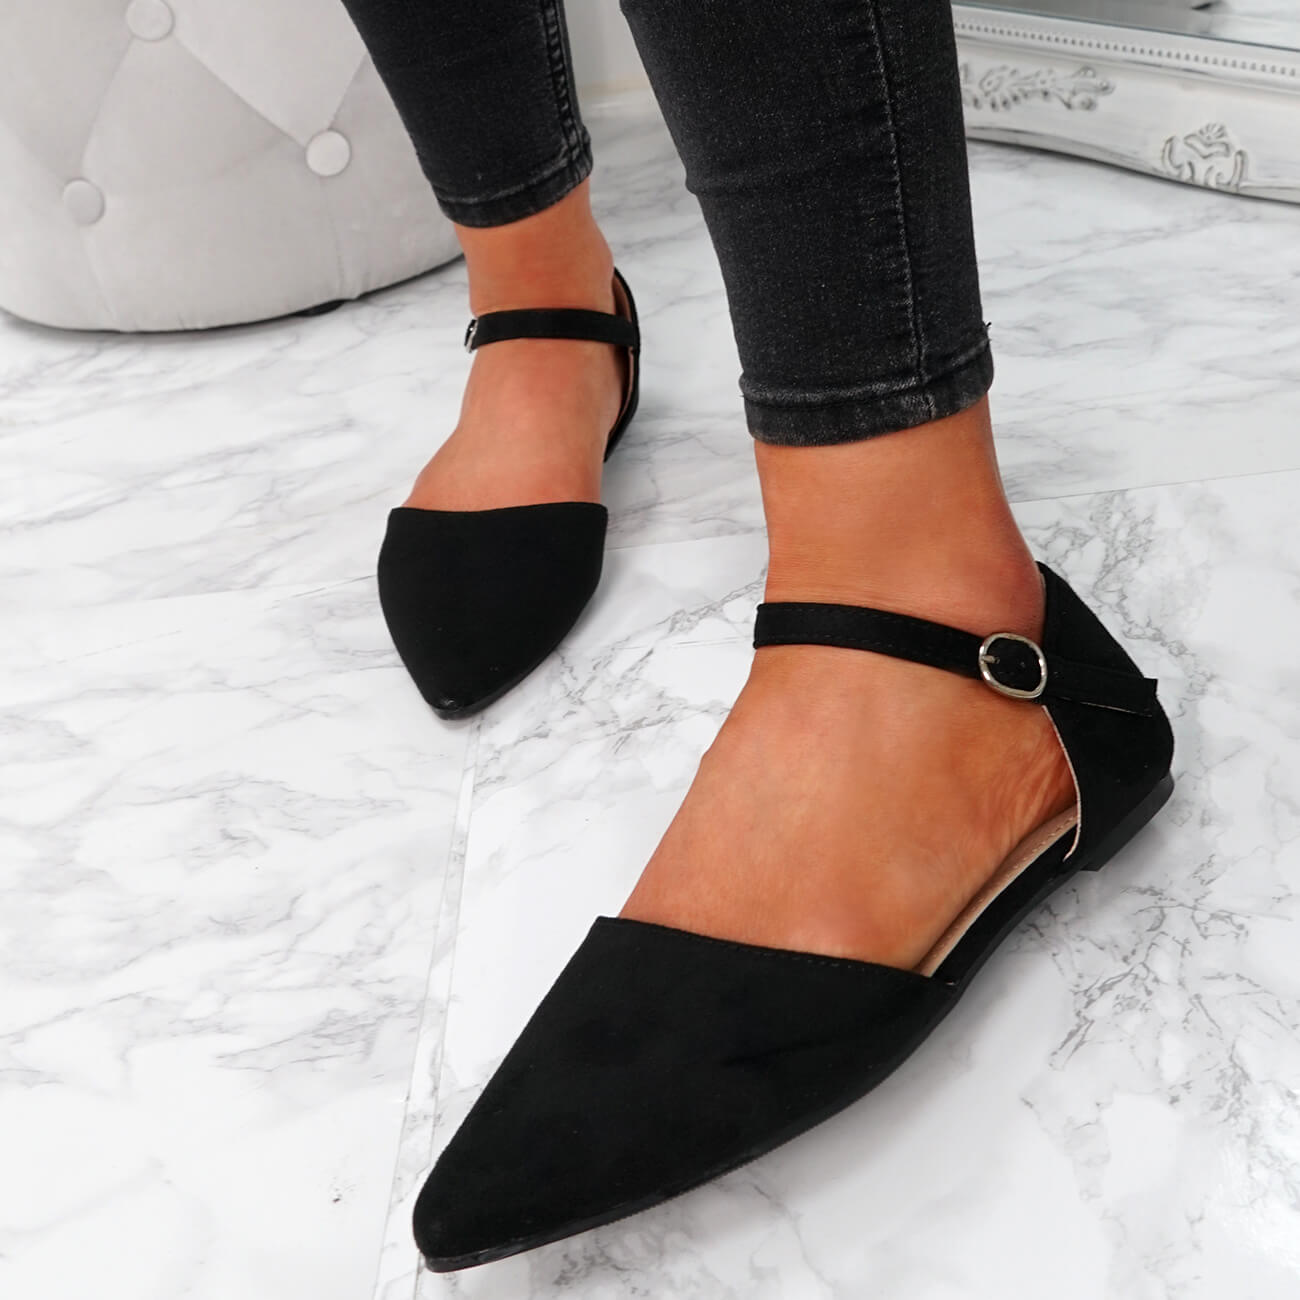 WOMENS LADIES ANKLE STRAP POINTED BALLERINAS PUMPS FLATS SUMMER SHOES SIZE